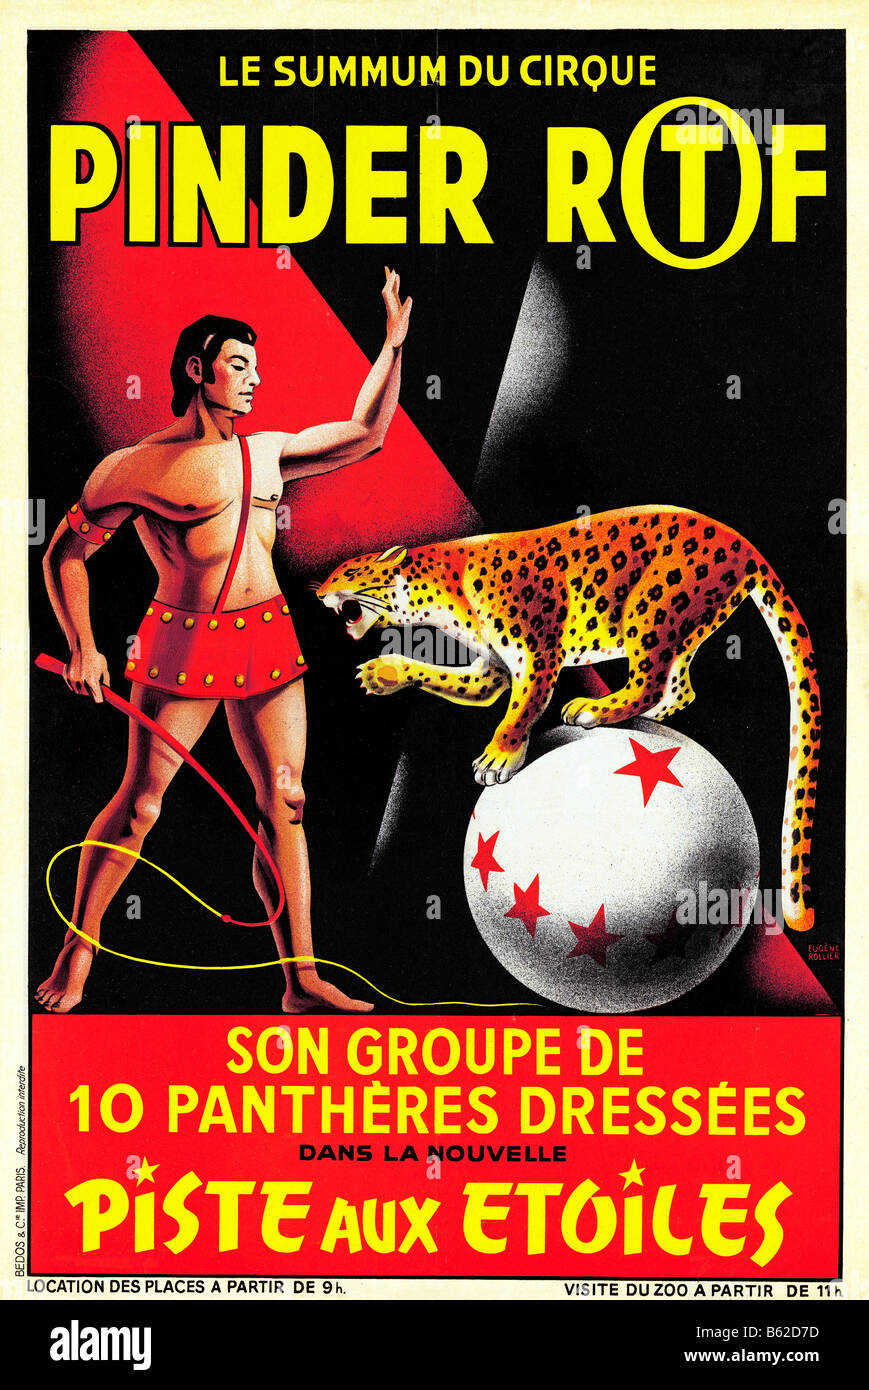 Pinder RTF Circus 1950s poster for the French travelling menagerie featuring trained panthers - Stock Image